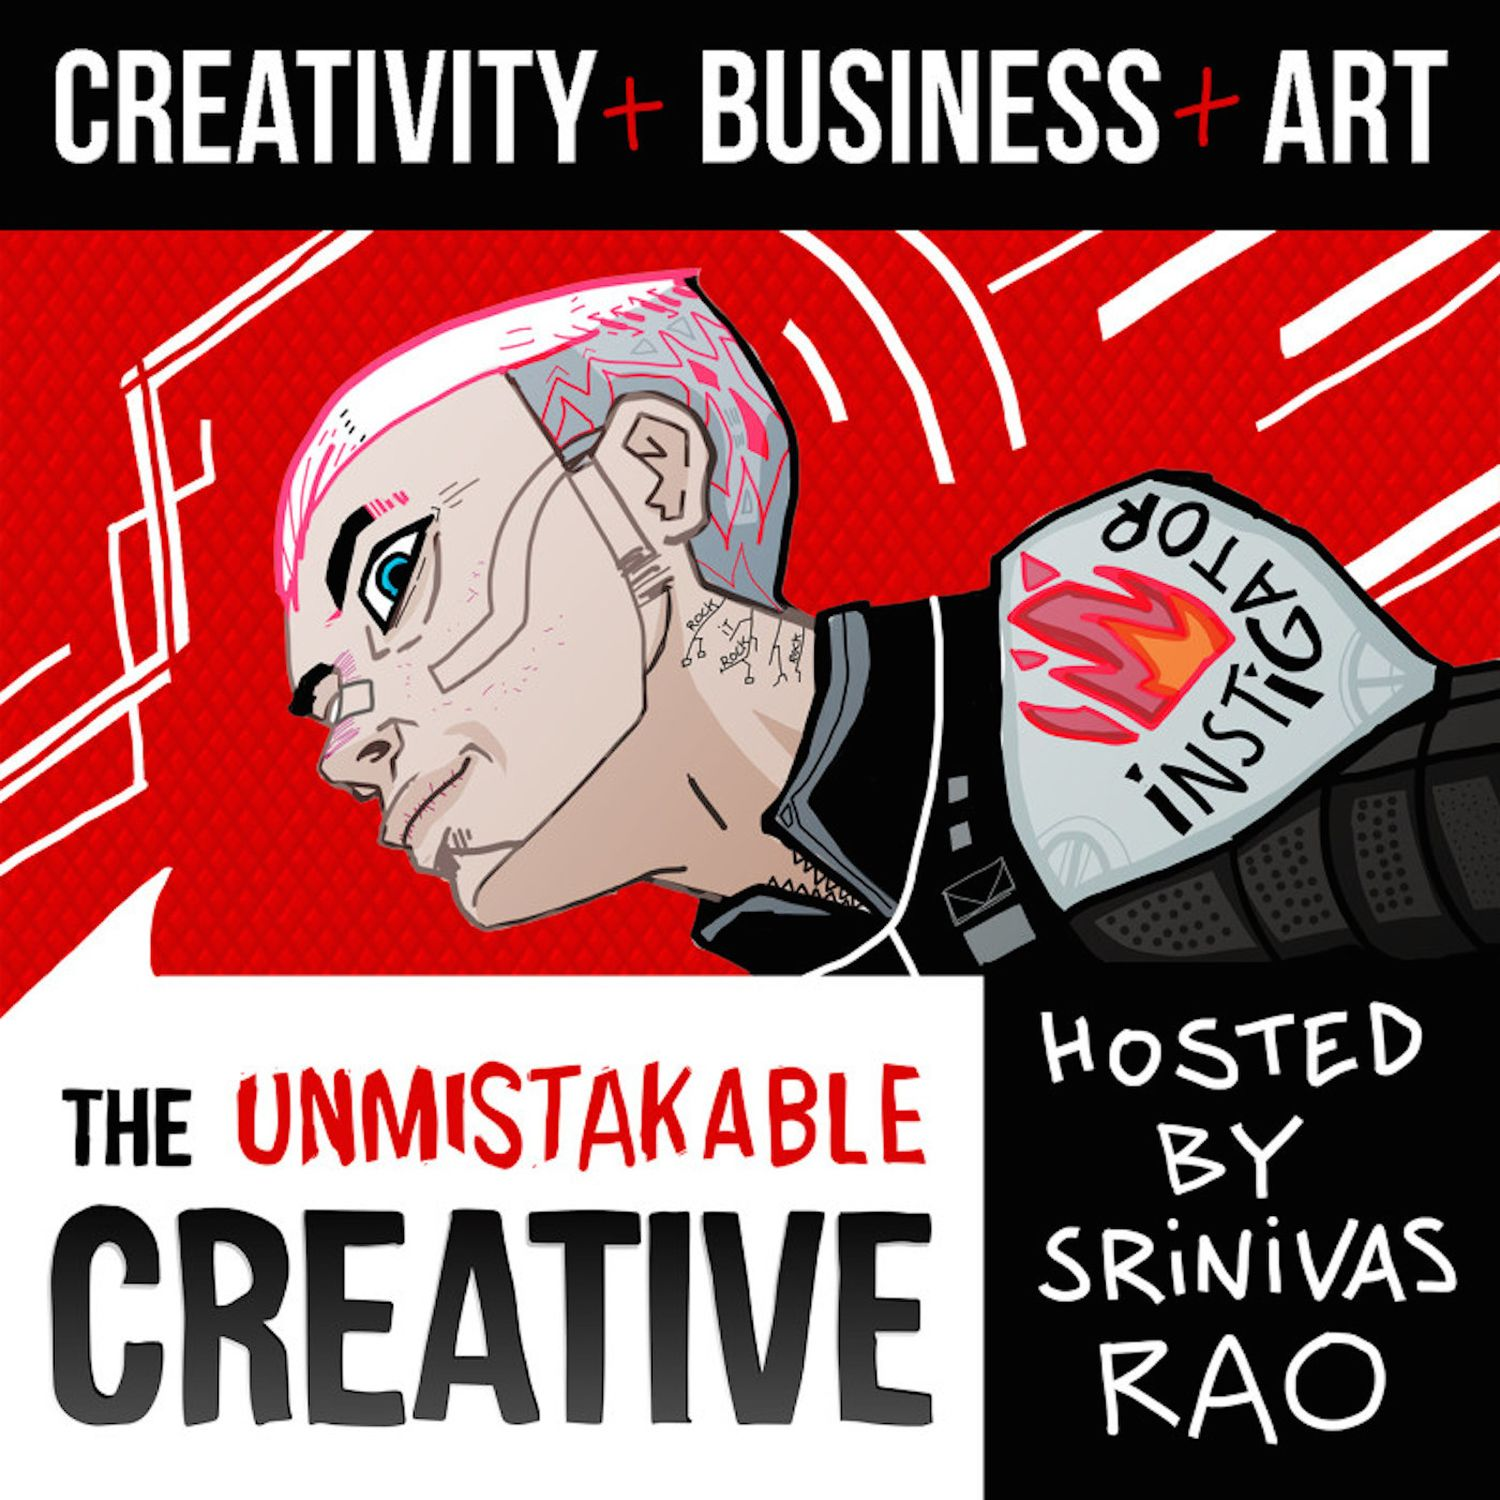 The Unmistakable Creative Podcast podcast show image